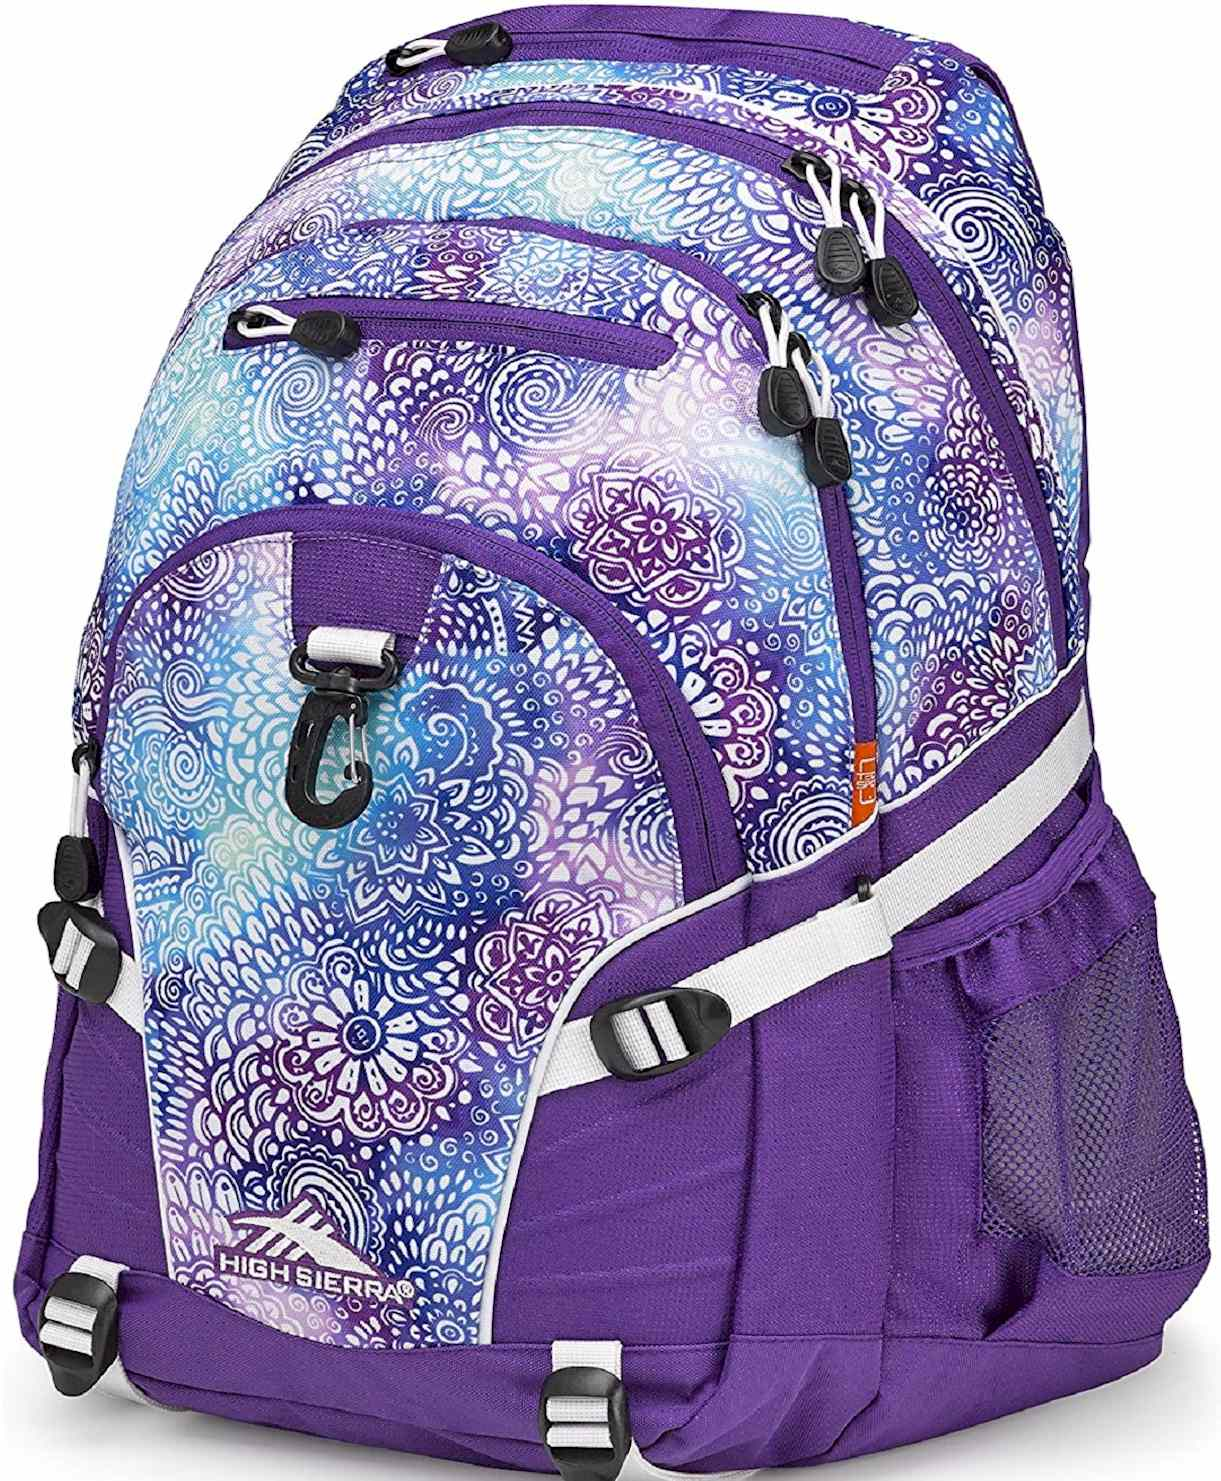 Backpacks For Women - #Hiking #Trekking #outdoor #camping #trips #trail #school #love #DIY#